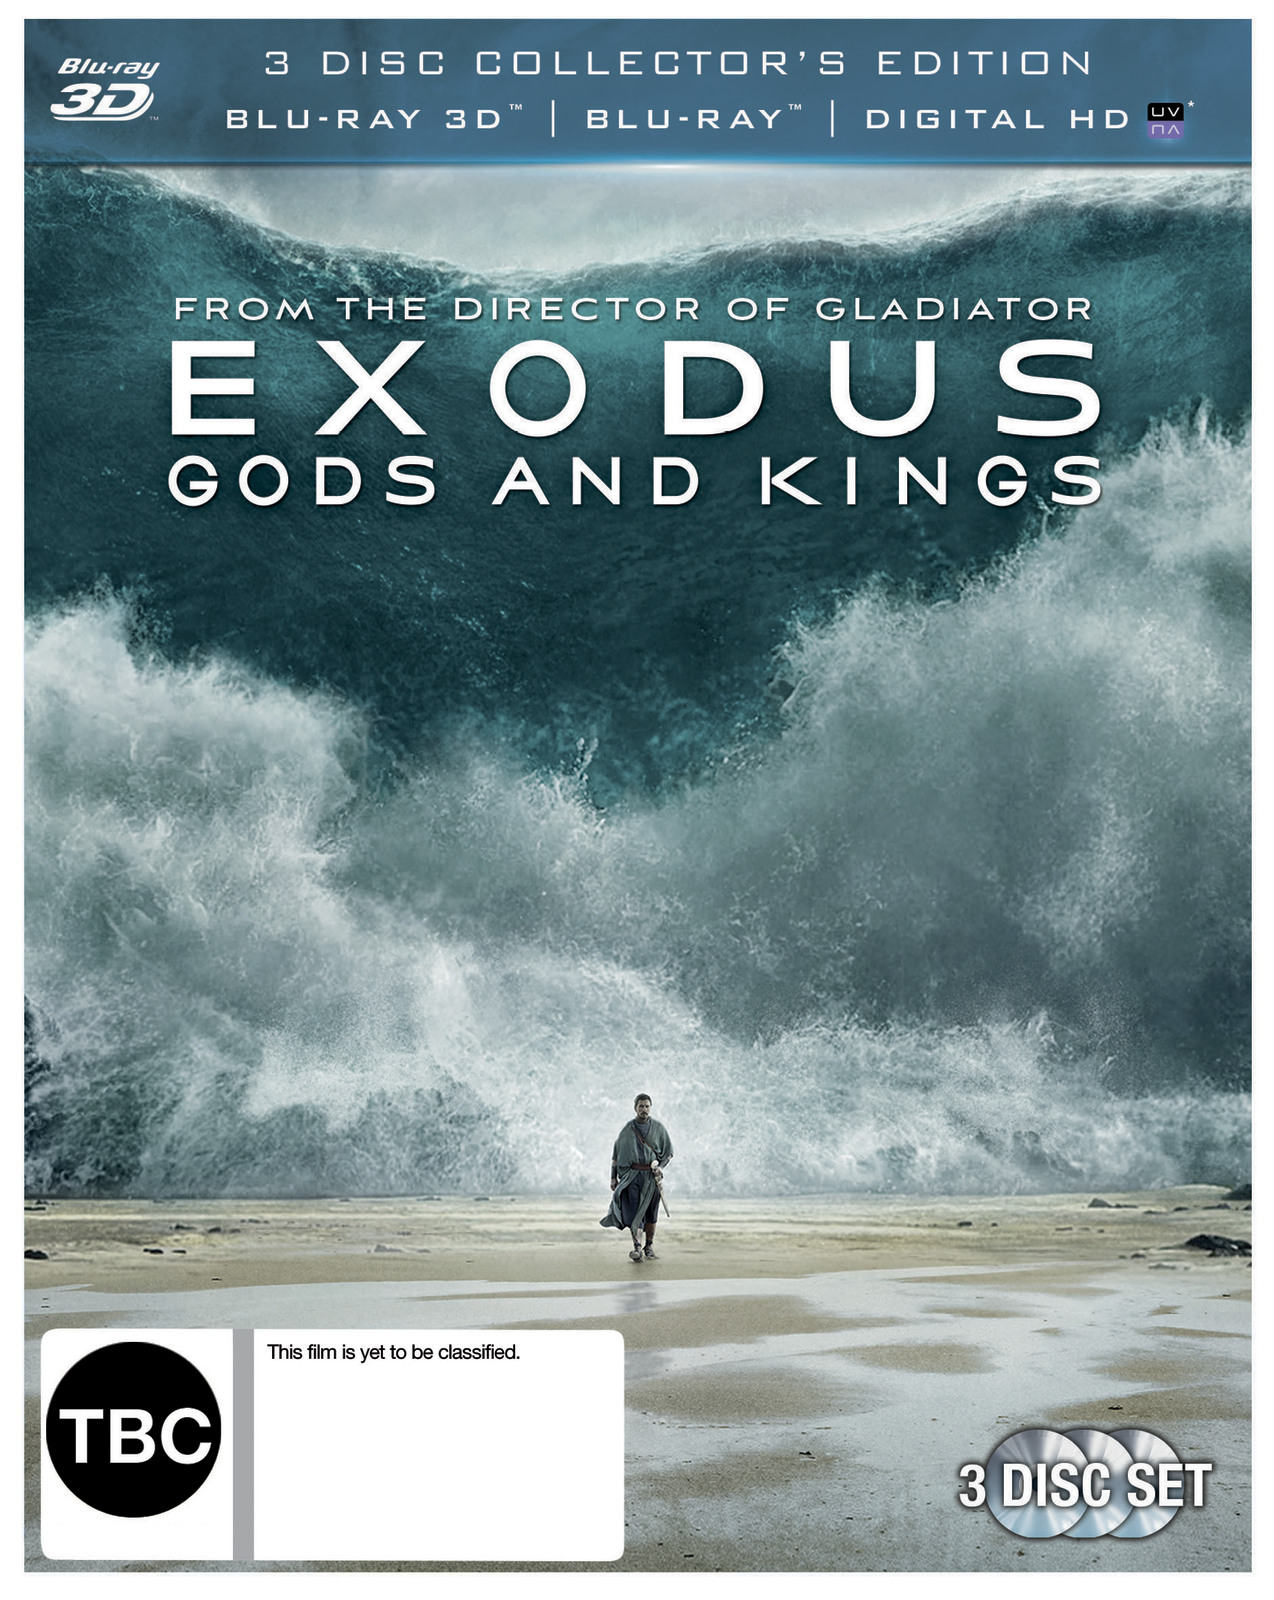 Exodus: Gods & Kings on Blu-ray, 3D Blu-ray image